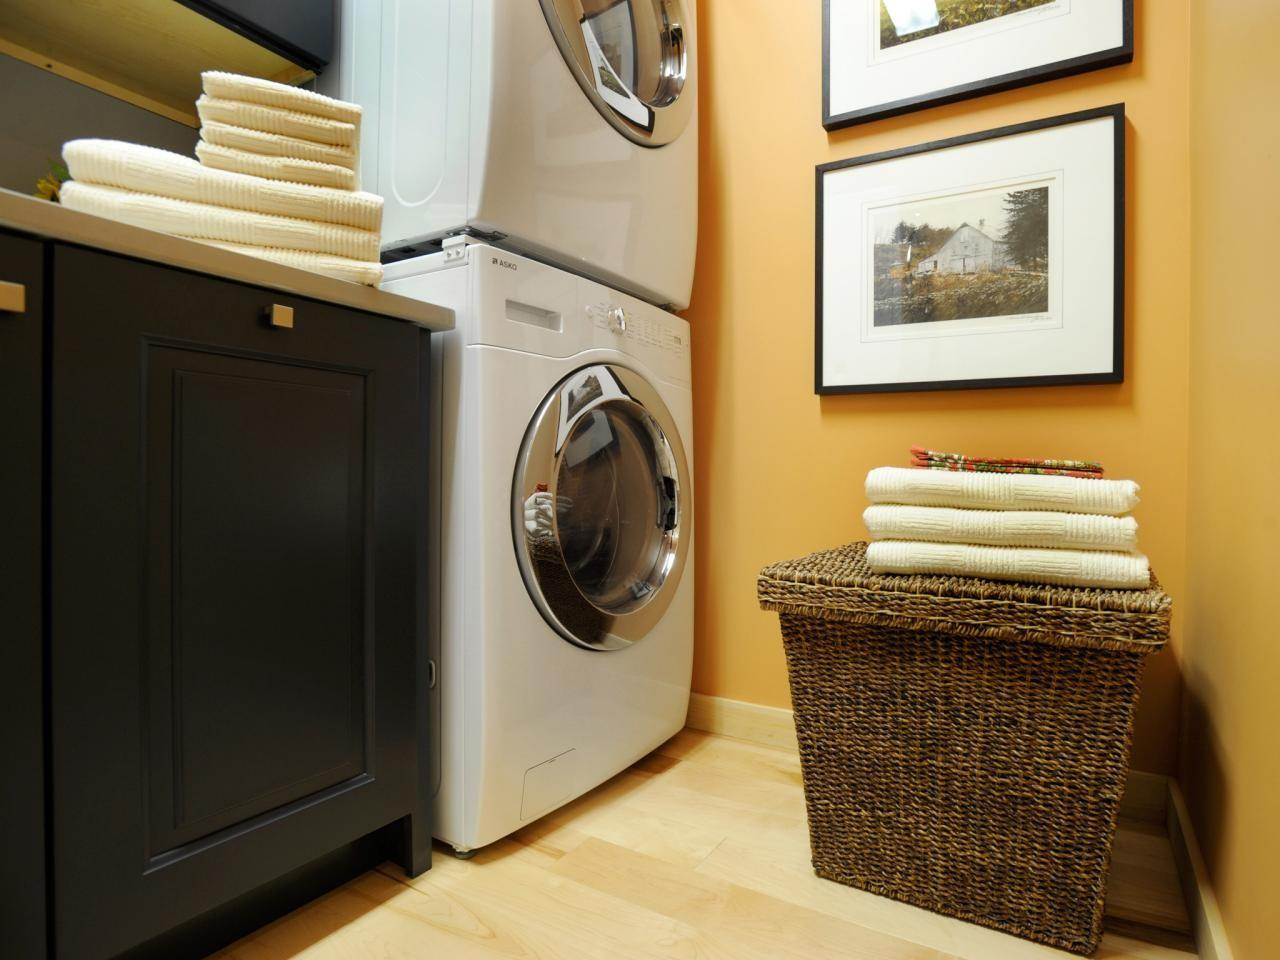 Small Room Design Glass Laundry Hanging